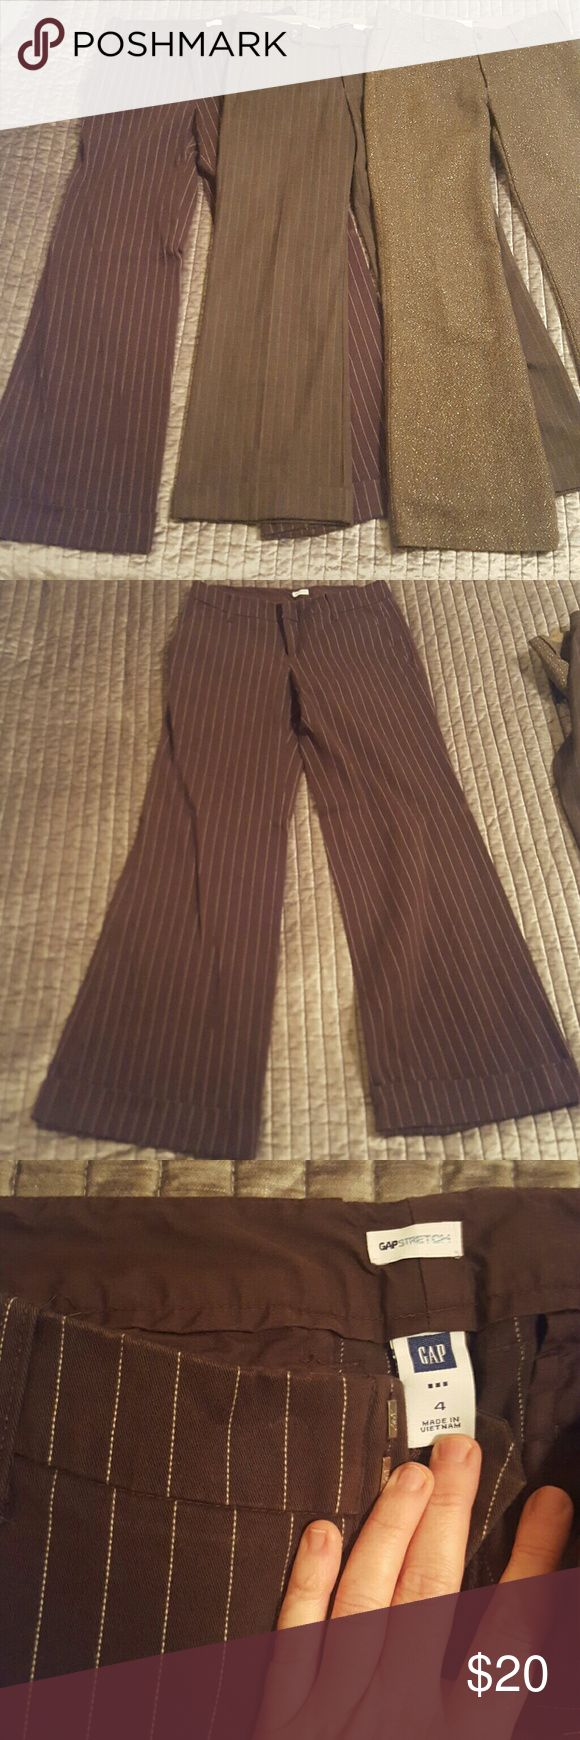 Lady Boss Wide Leg Gap Work Pant Bundle Lot Gap wide leg work pants and in great condition! Left Gap stretch size 4 regular length 98% cotton 2% spandex Middle Gap stretch size 2 ankle length 50% wool 48% polyester 2% spandex Right Gap low rise trouser 4R 58% recycled wool 29% polyester  8% acrylic 5% other and silky soft lining that has a rip (in inside lining) but still covers inside nicely so feels soft instead of wooly GAP Pants Trousers